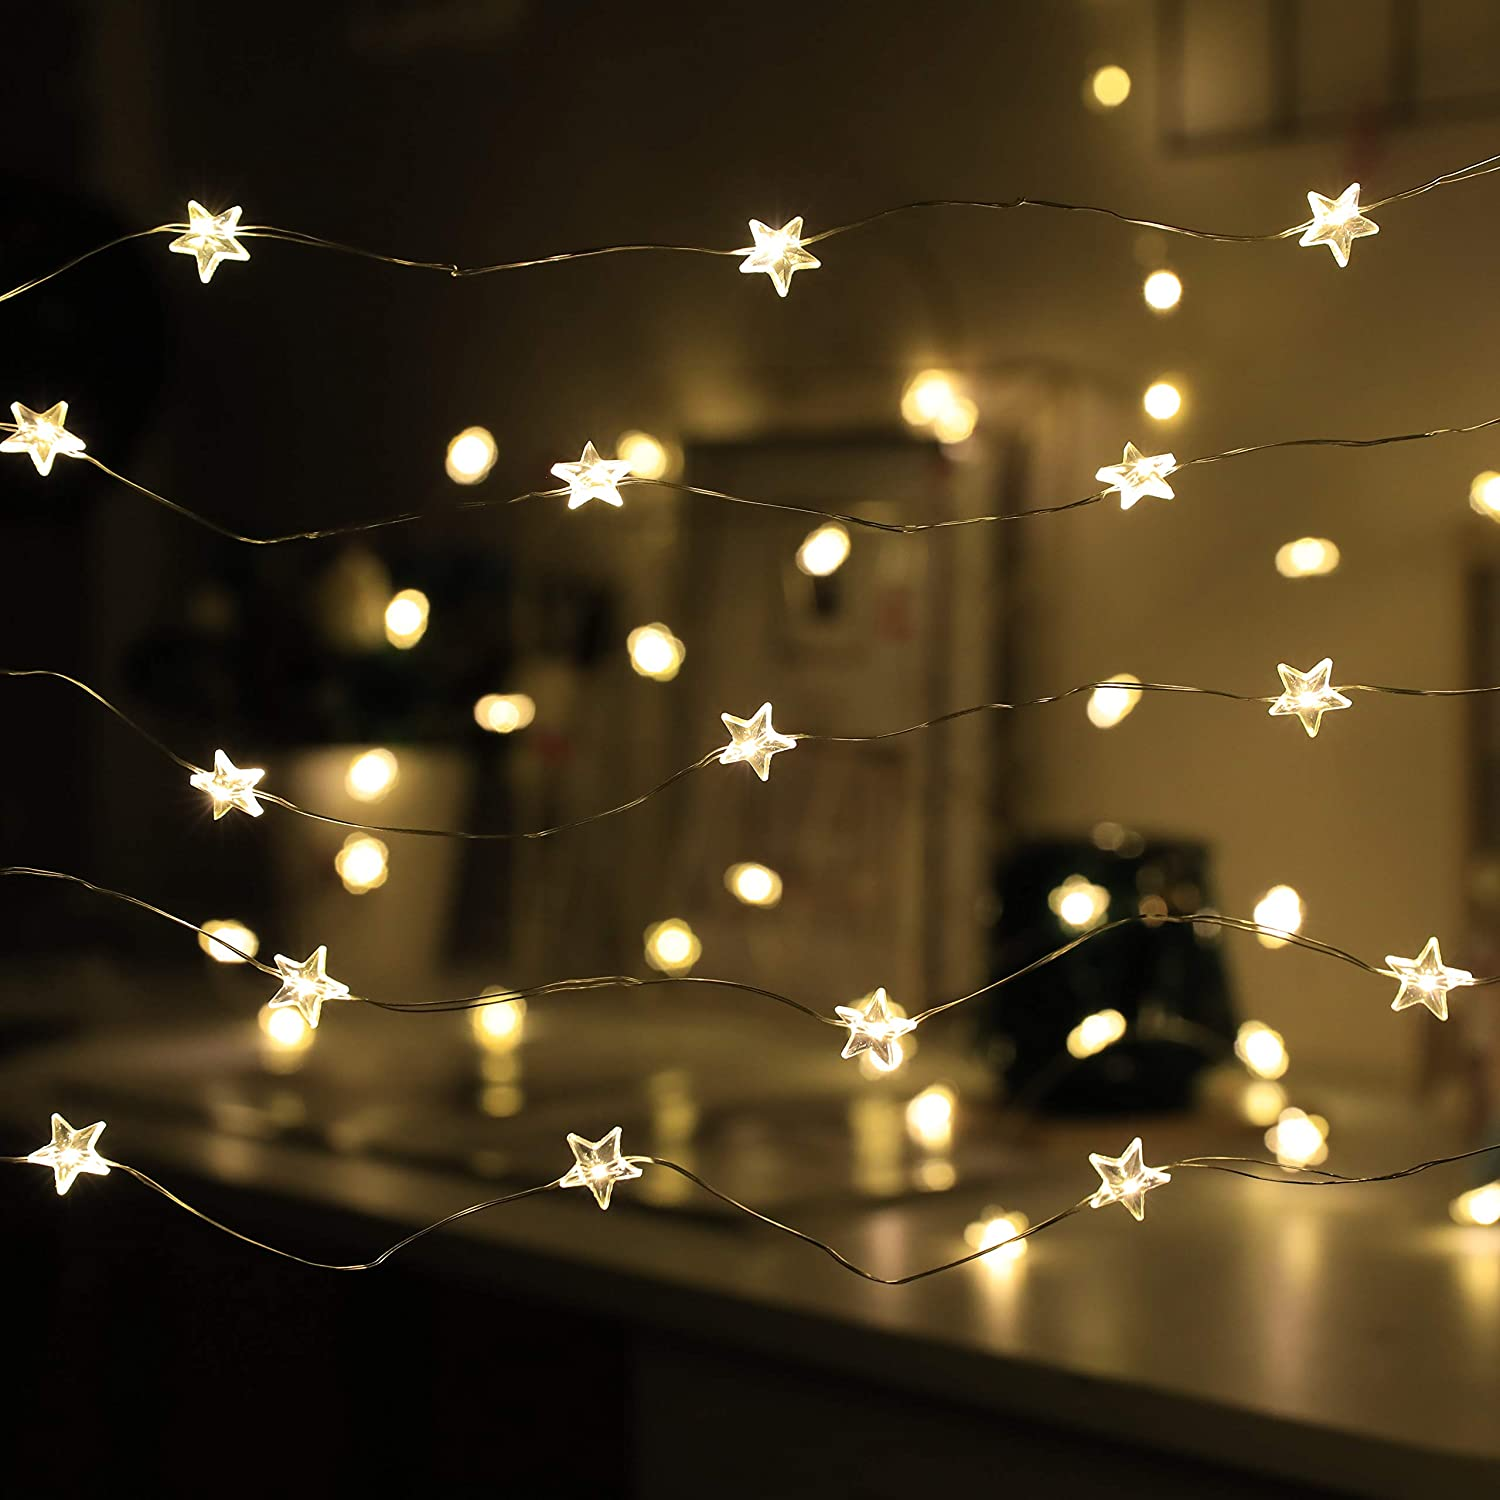 2021 Star String Lights 40 LED Decorative Fairy Light 8 Modes USB & Battery Powered Lights 13ft Waterproof Twinkle Lights Decor with Remote Control Timer for Party Decoration Holiday Kid Bedroom